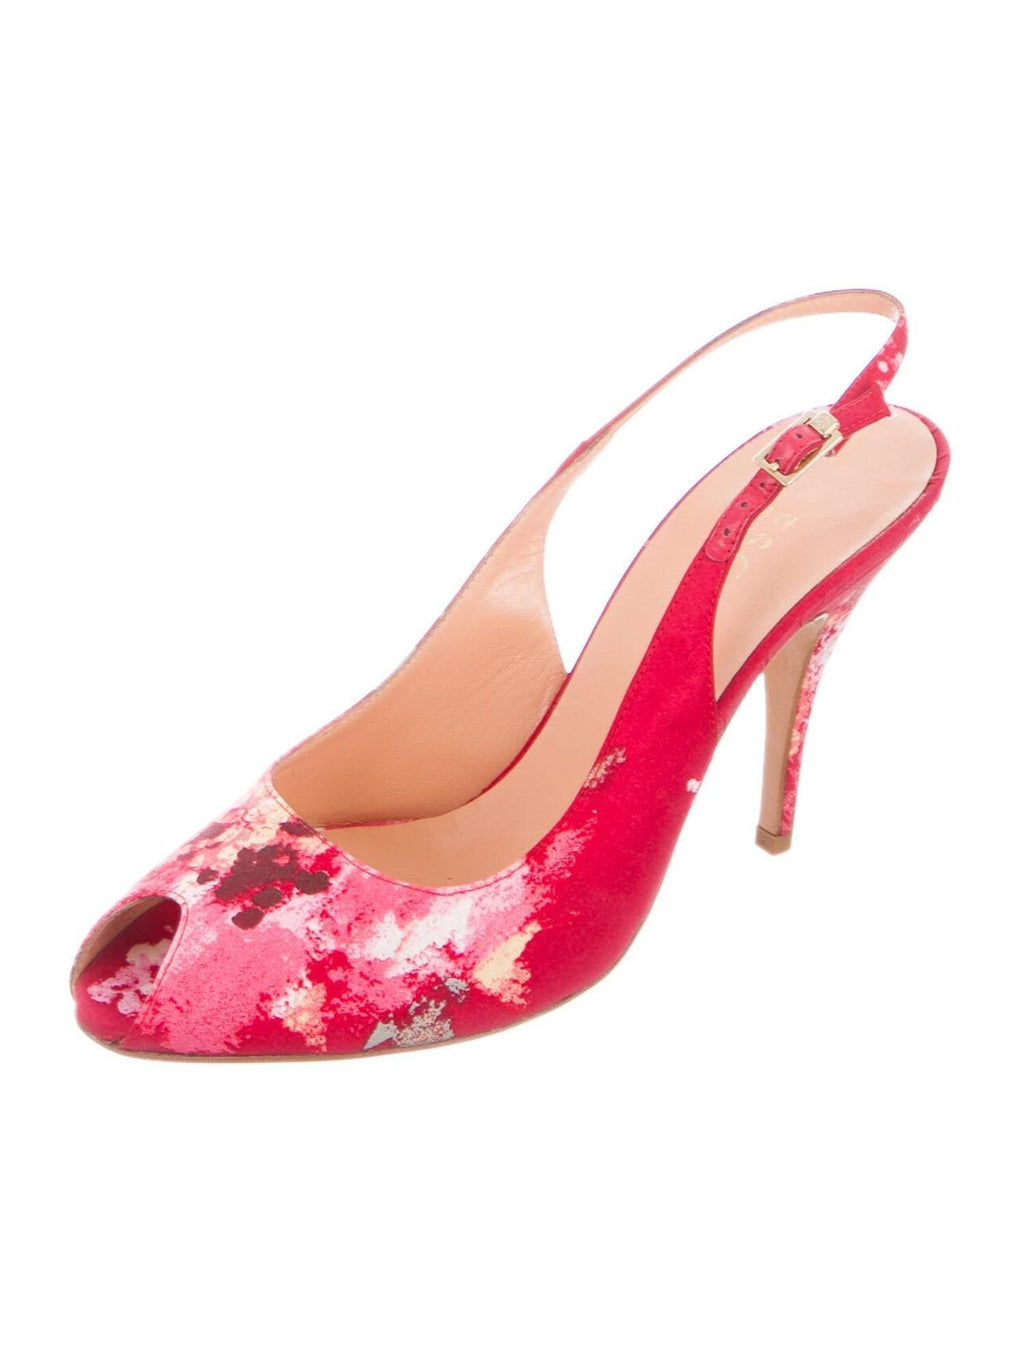 ESCADA Printed Sling Back Pumps Size: 8 | IT 38 New!,your-fashions-for-less,Escada,Heels.